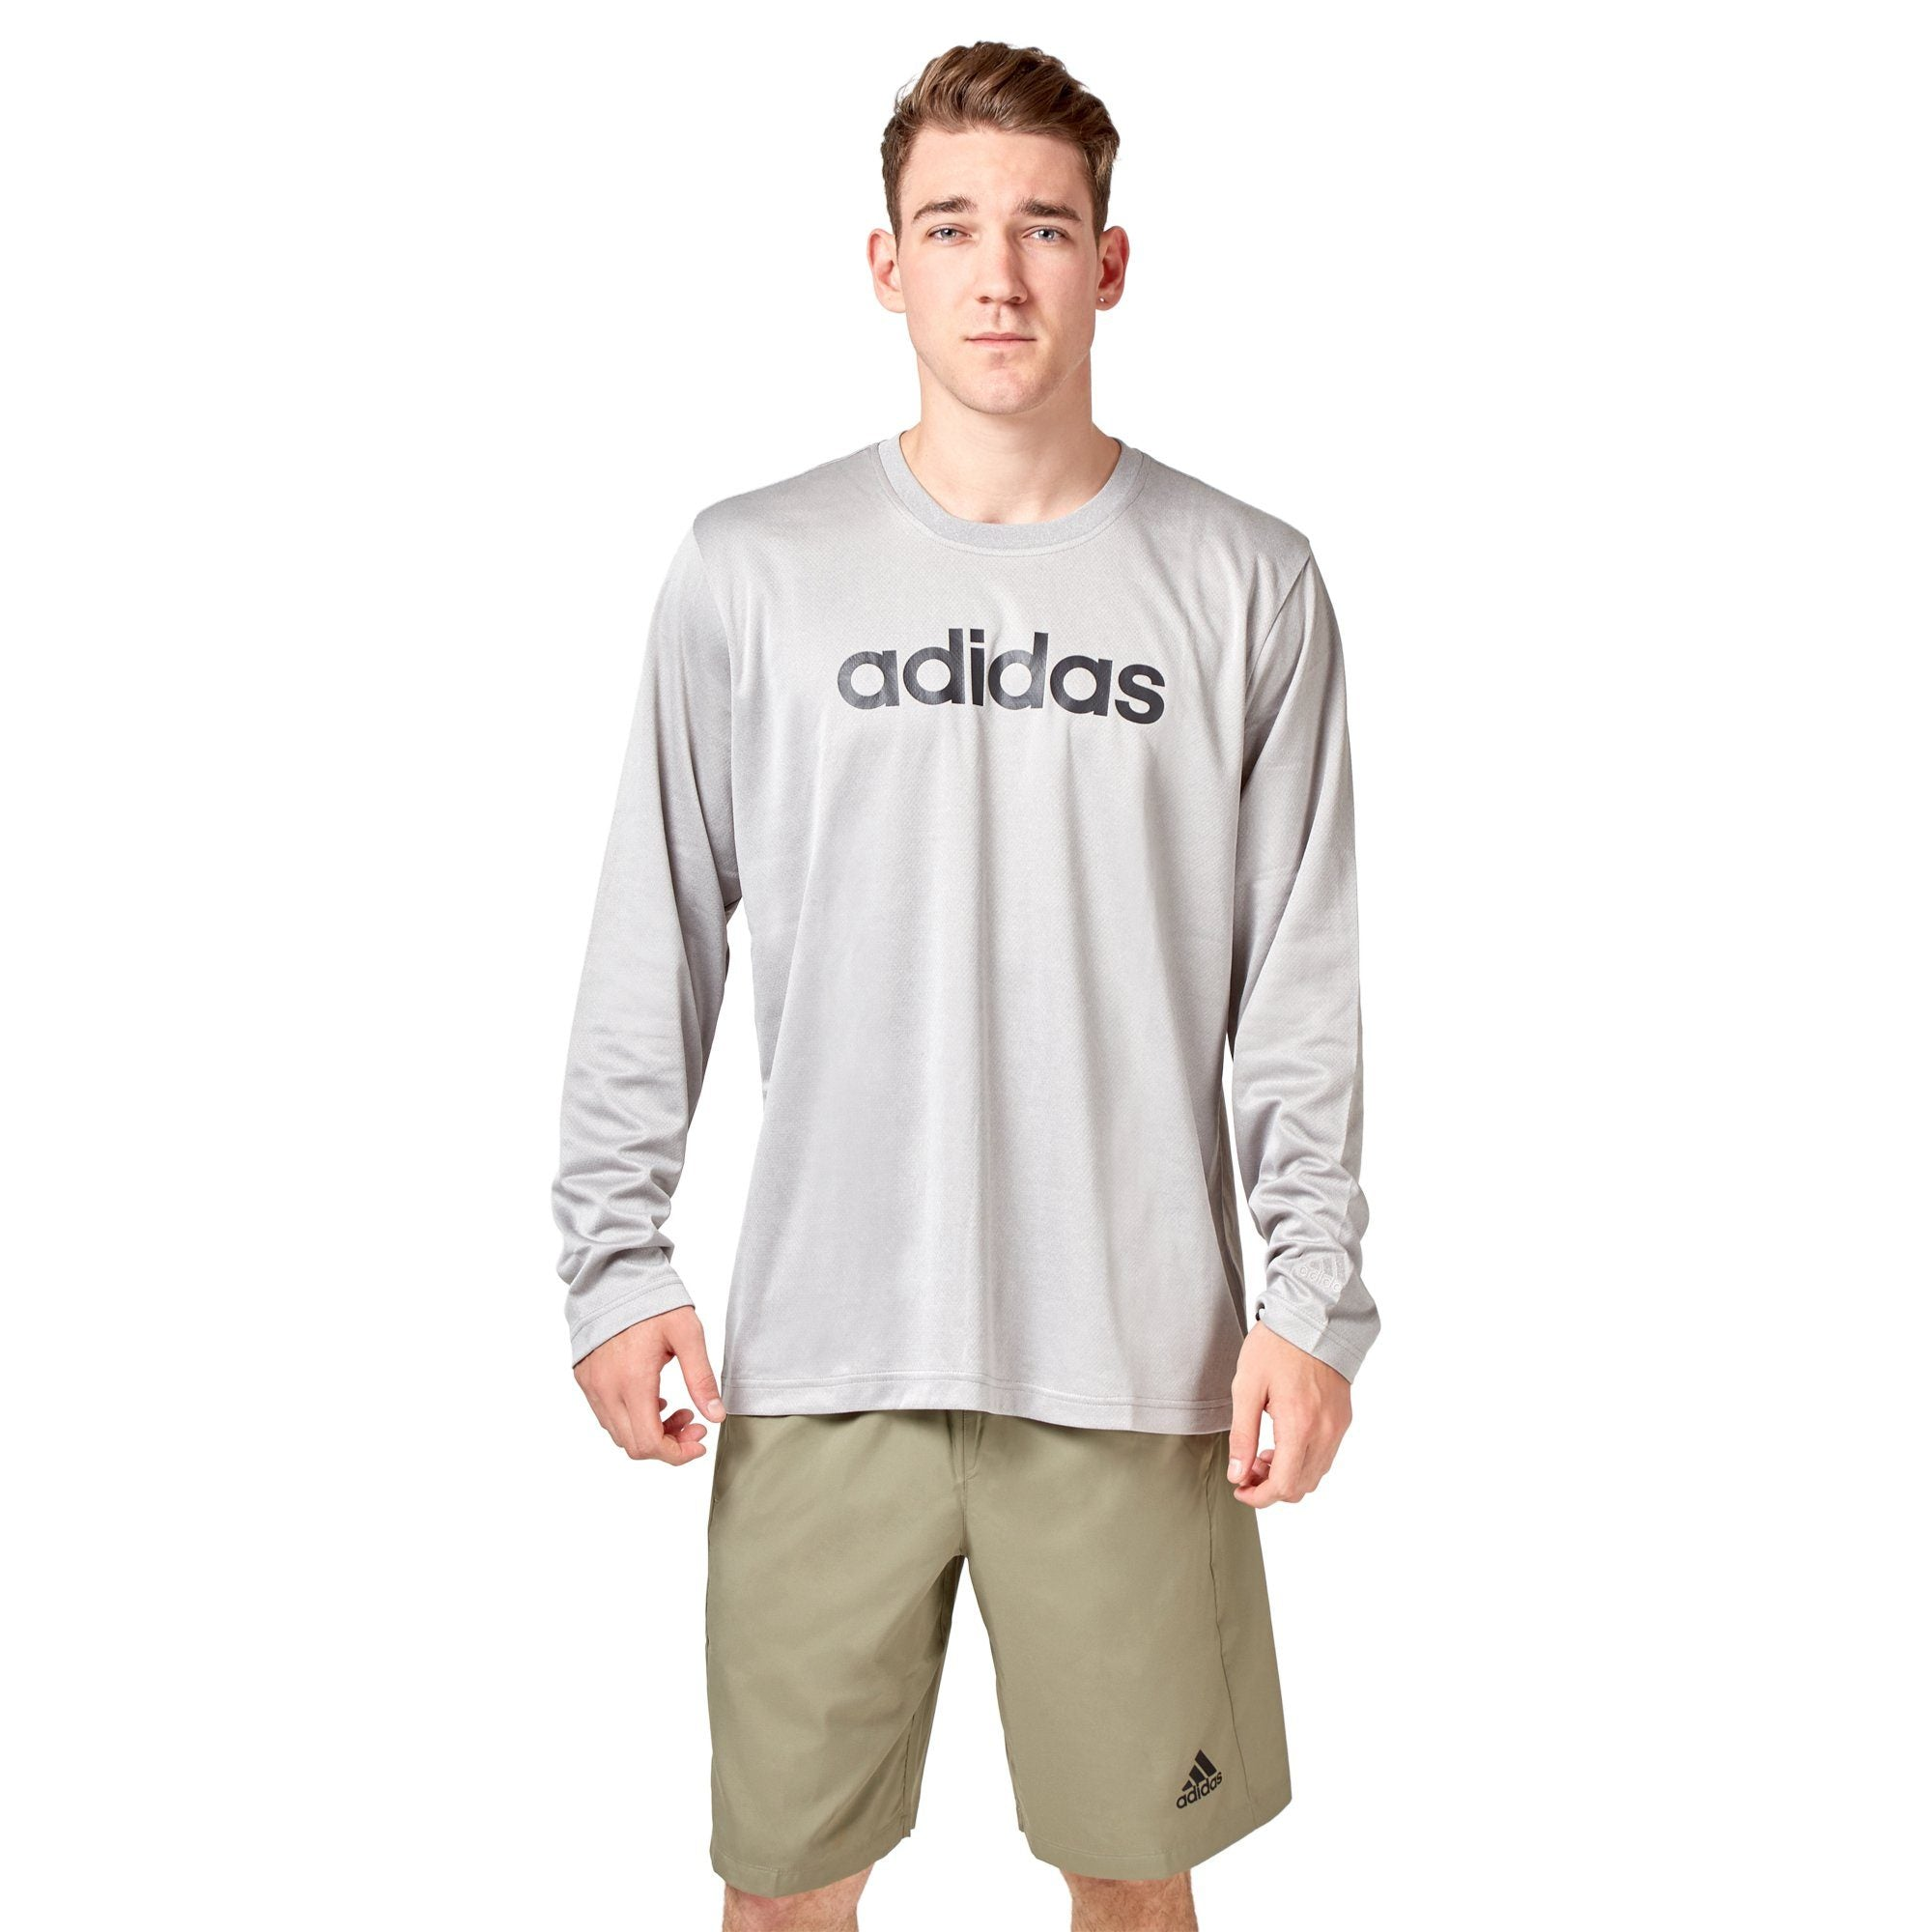 Adidas Men's Logo Long Sleeve Tee - Mid grey heather SportsPower Geelong  (2012420112443)